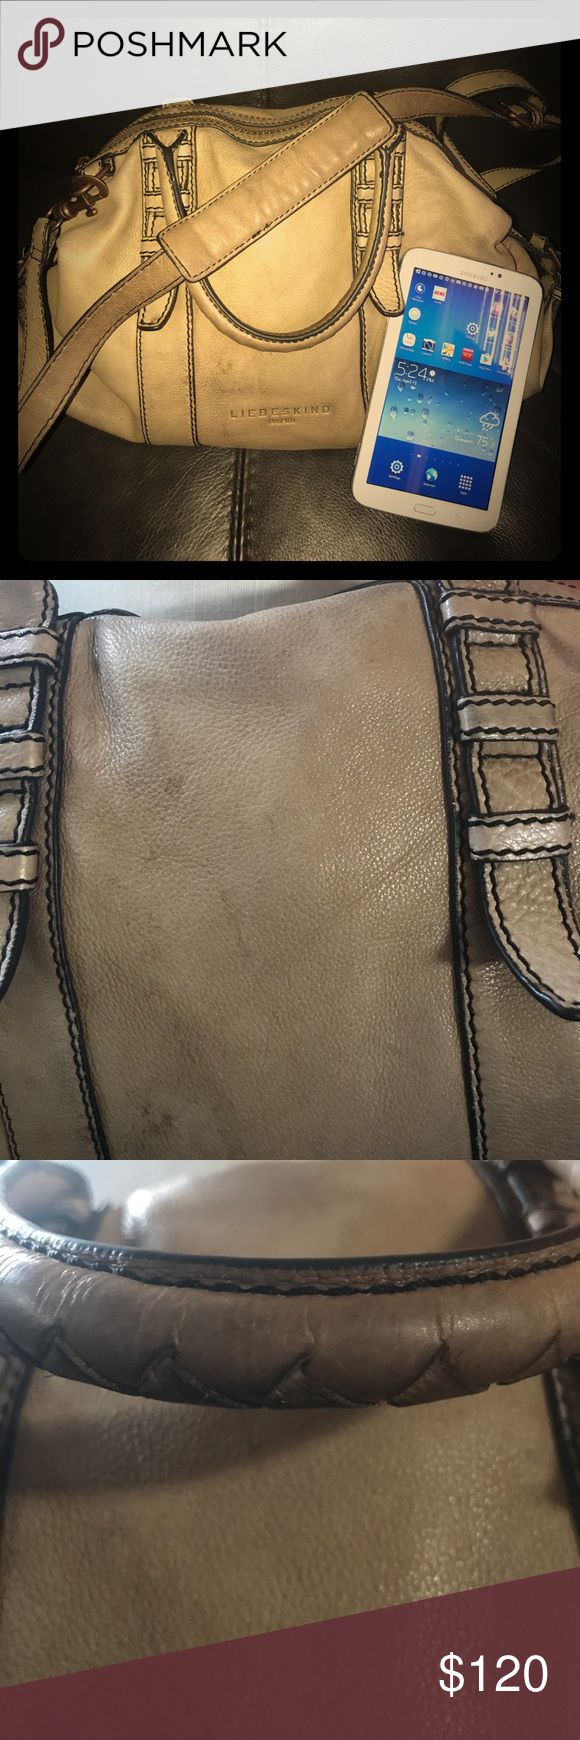 🌹Stylish Balenciaga Style Cross Body Handbag🌹 Runway Model go to bag! Beautiful cream crinkled, butter soft leather distressed Balenciaga style bag with gorgeous belt design. Padded removable shoulder strap  Awesome copper metal detailing. There is some wear on the bottom and other areasPlease look closely at pics for wear. Inside on good condition. Liebeskind Bags Satchels